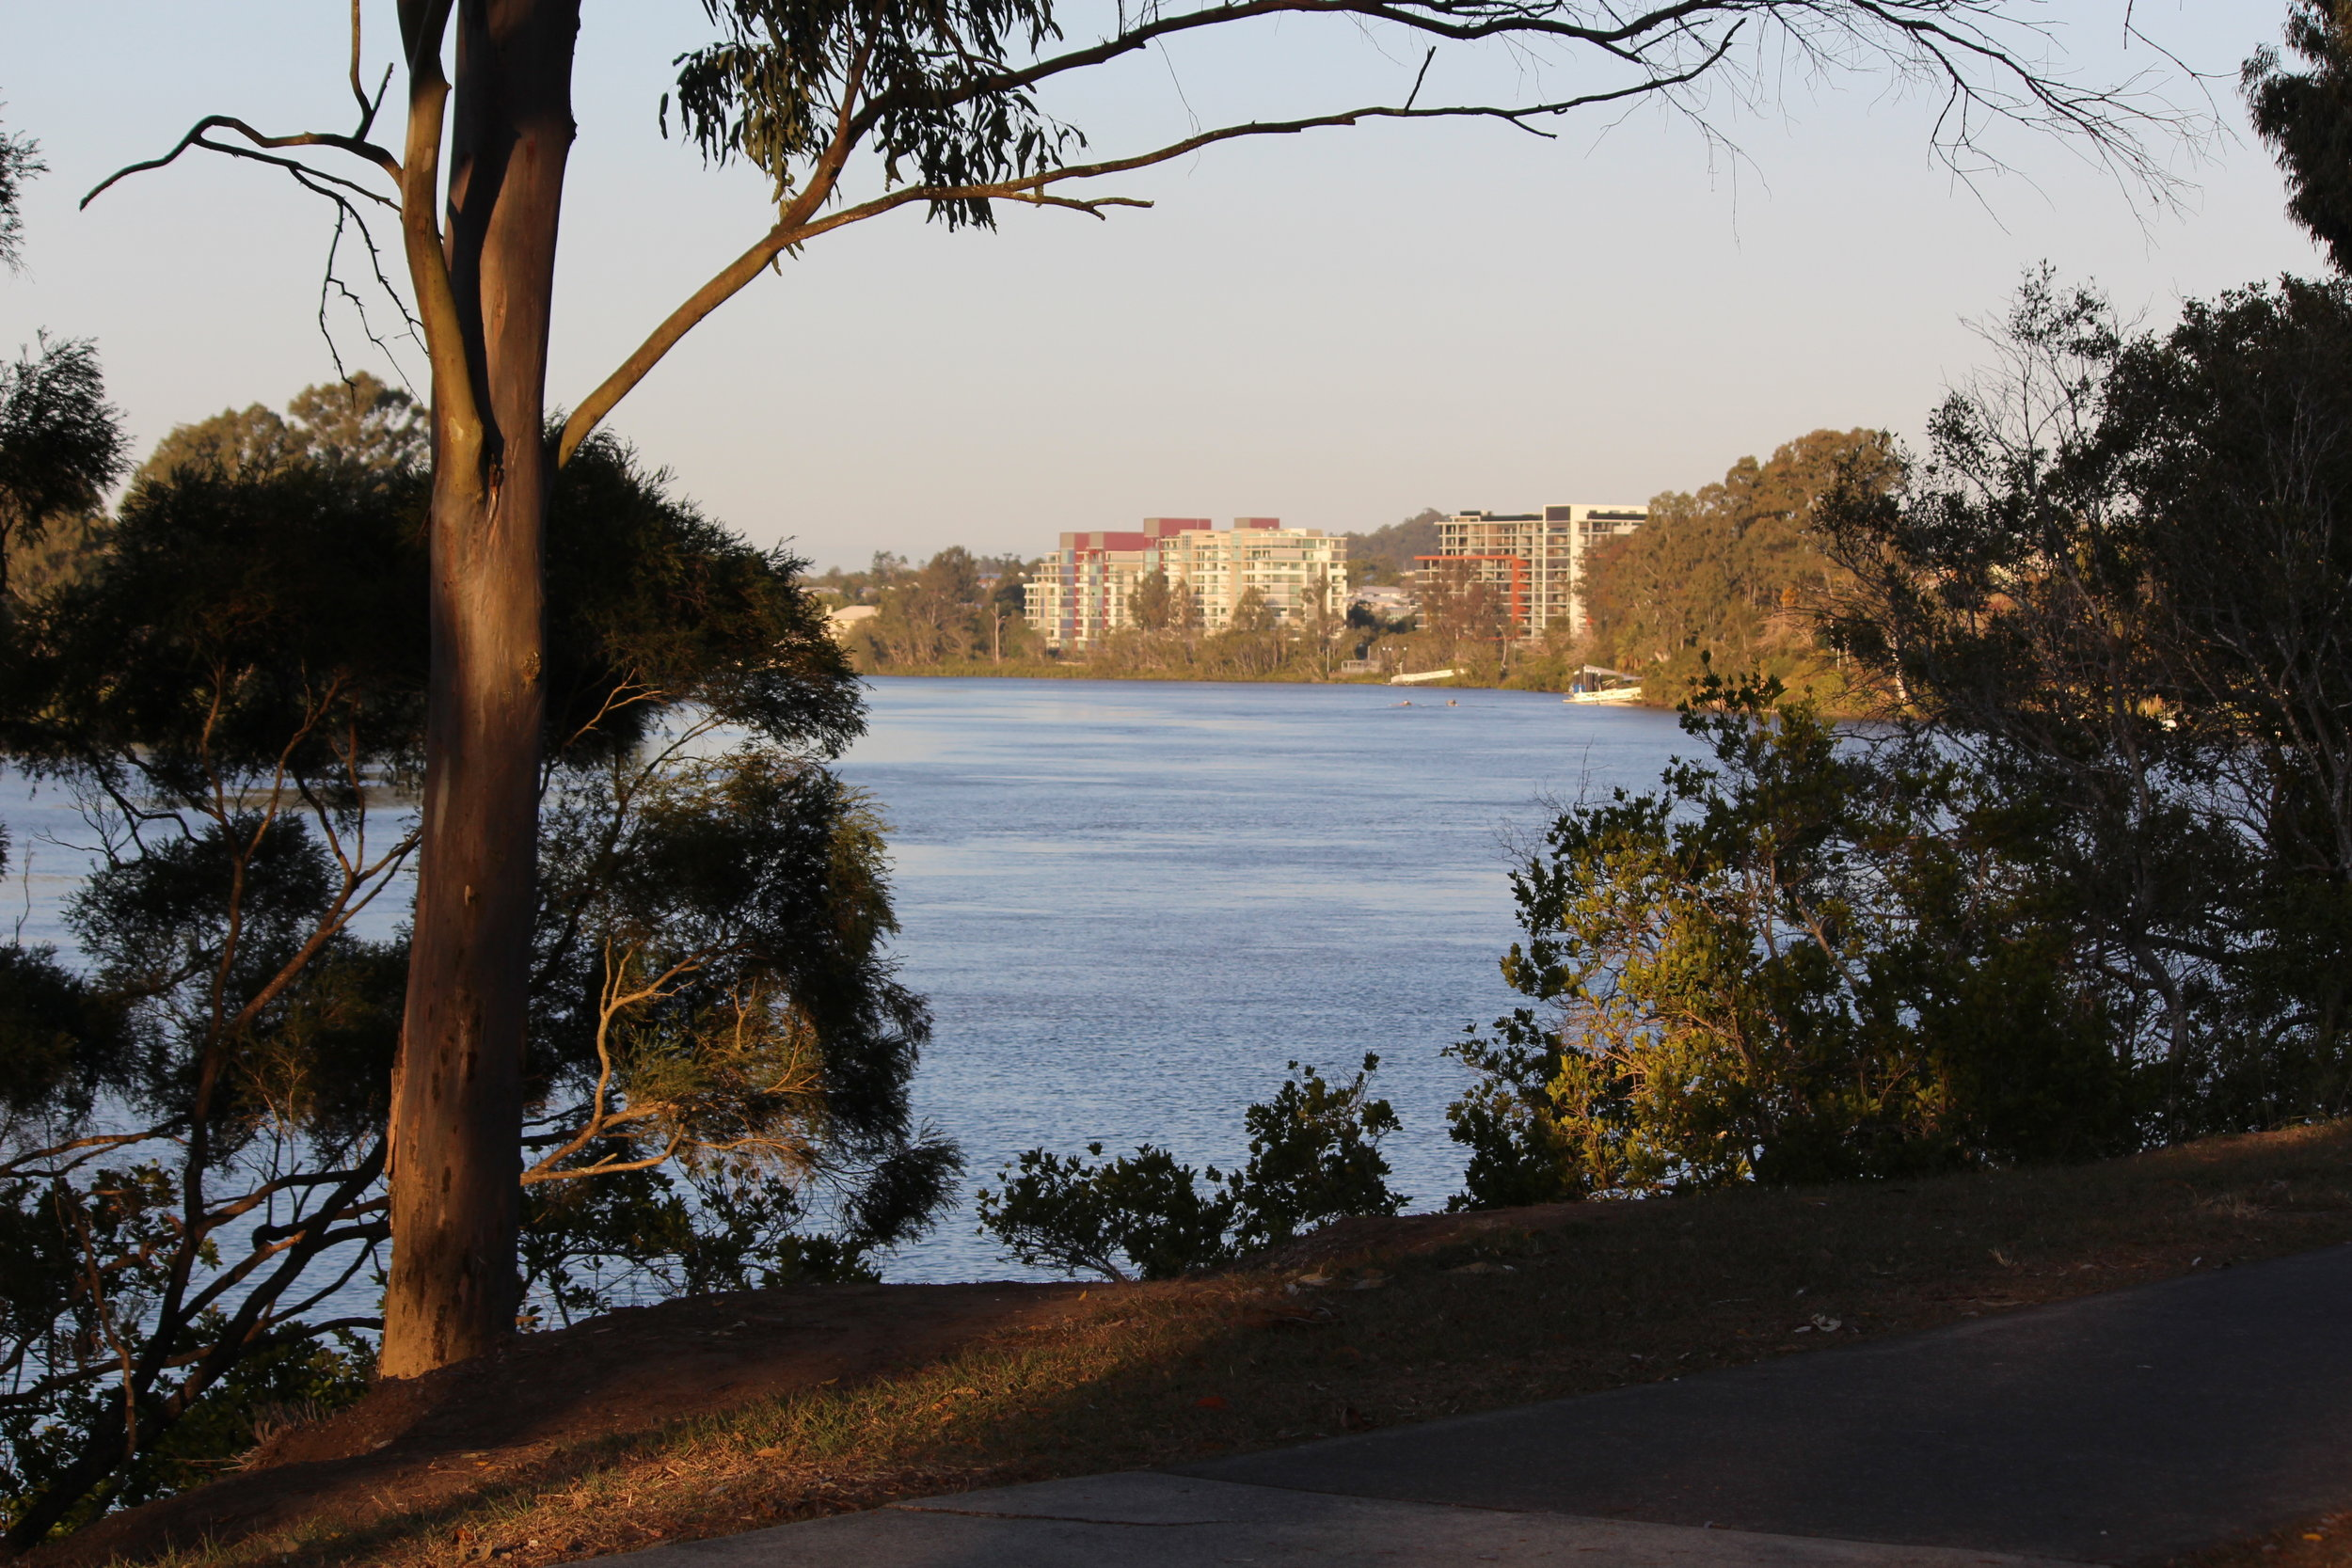 From Oxley Creek, looking up Canoe Reach to the Mirvac apartments